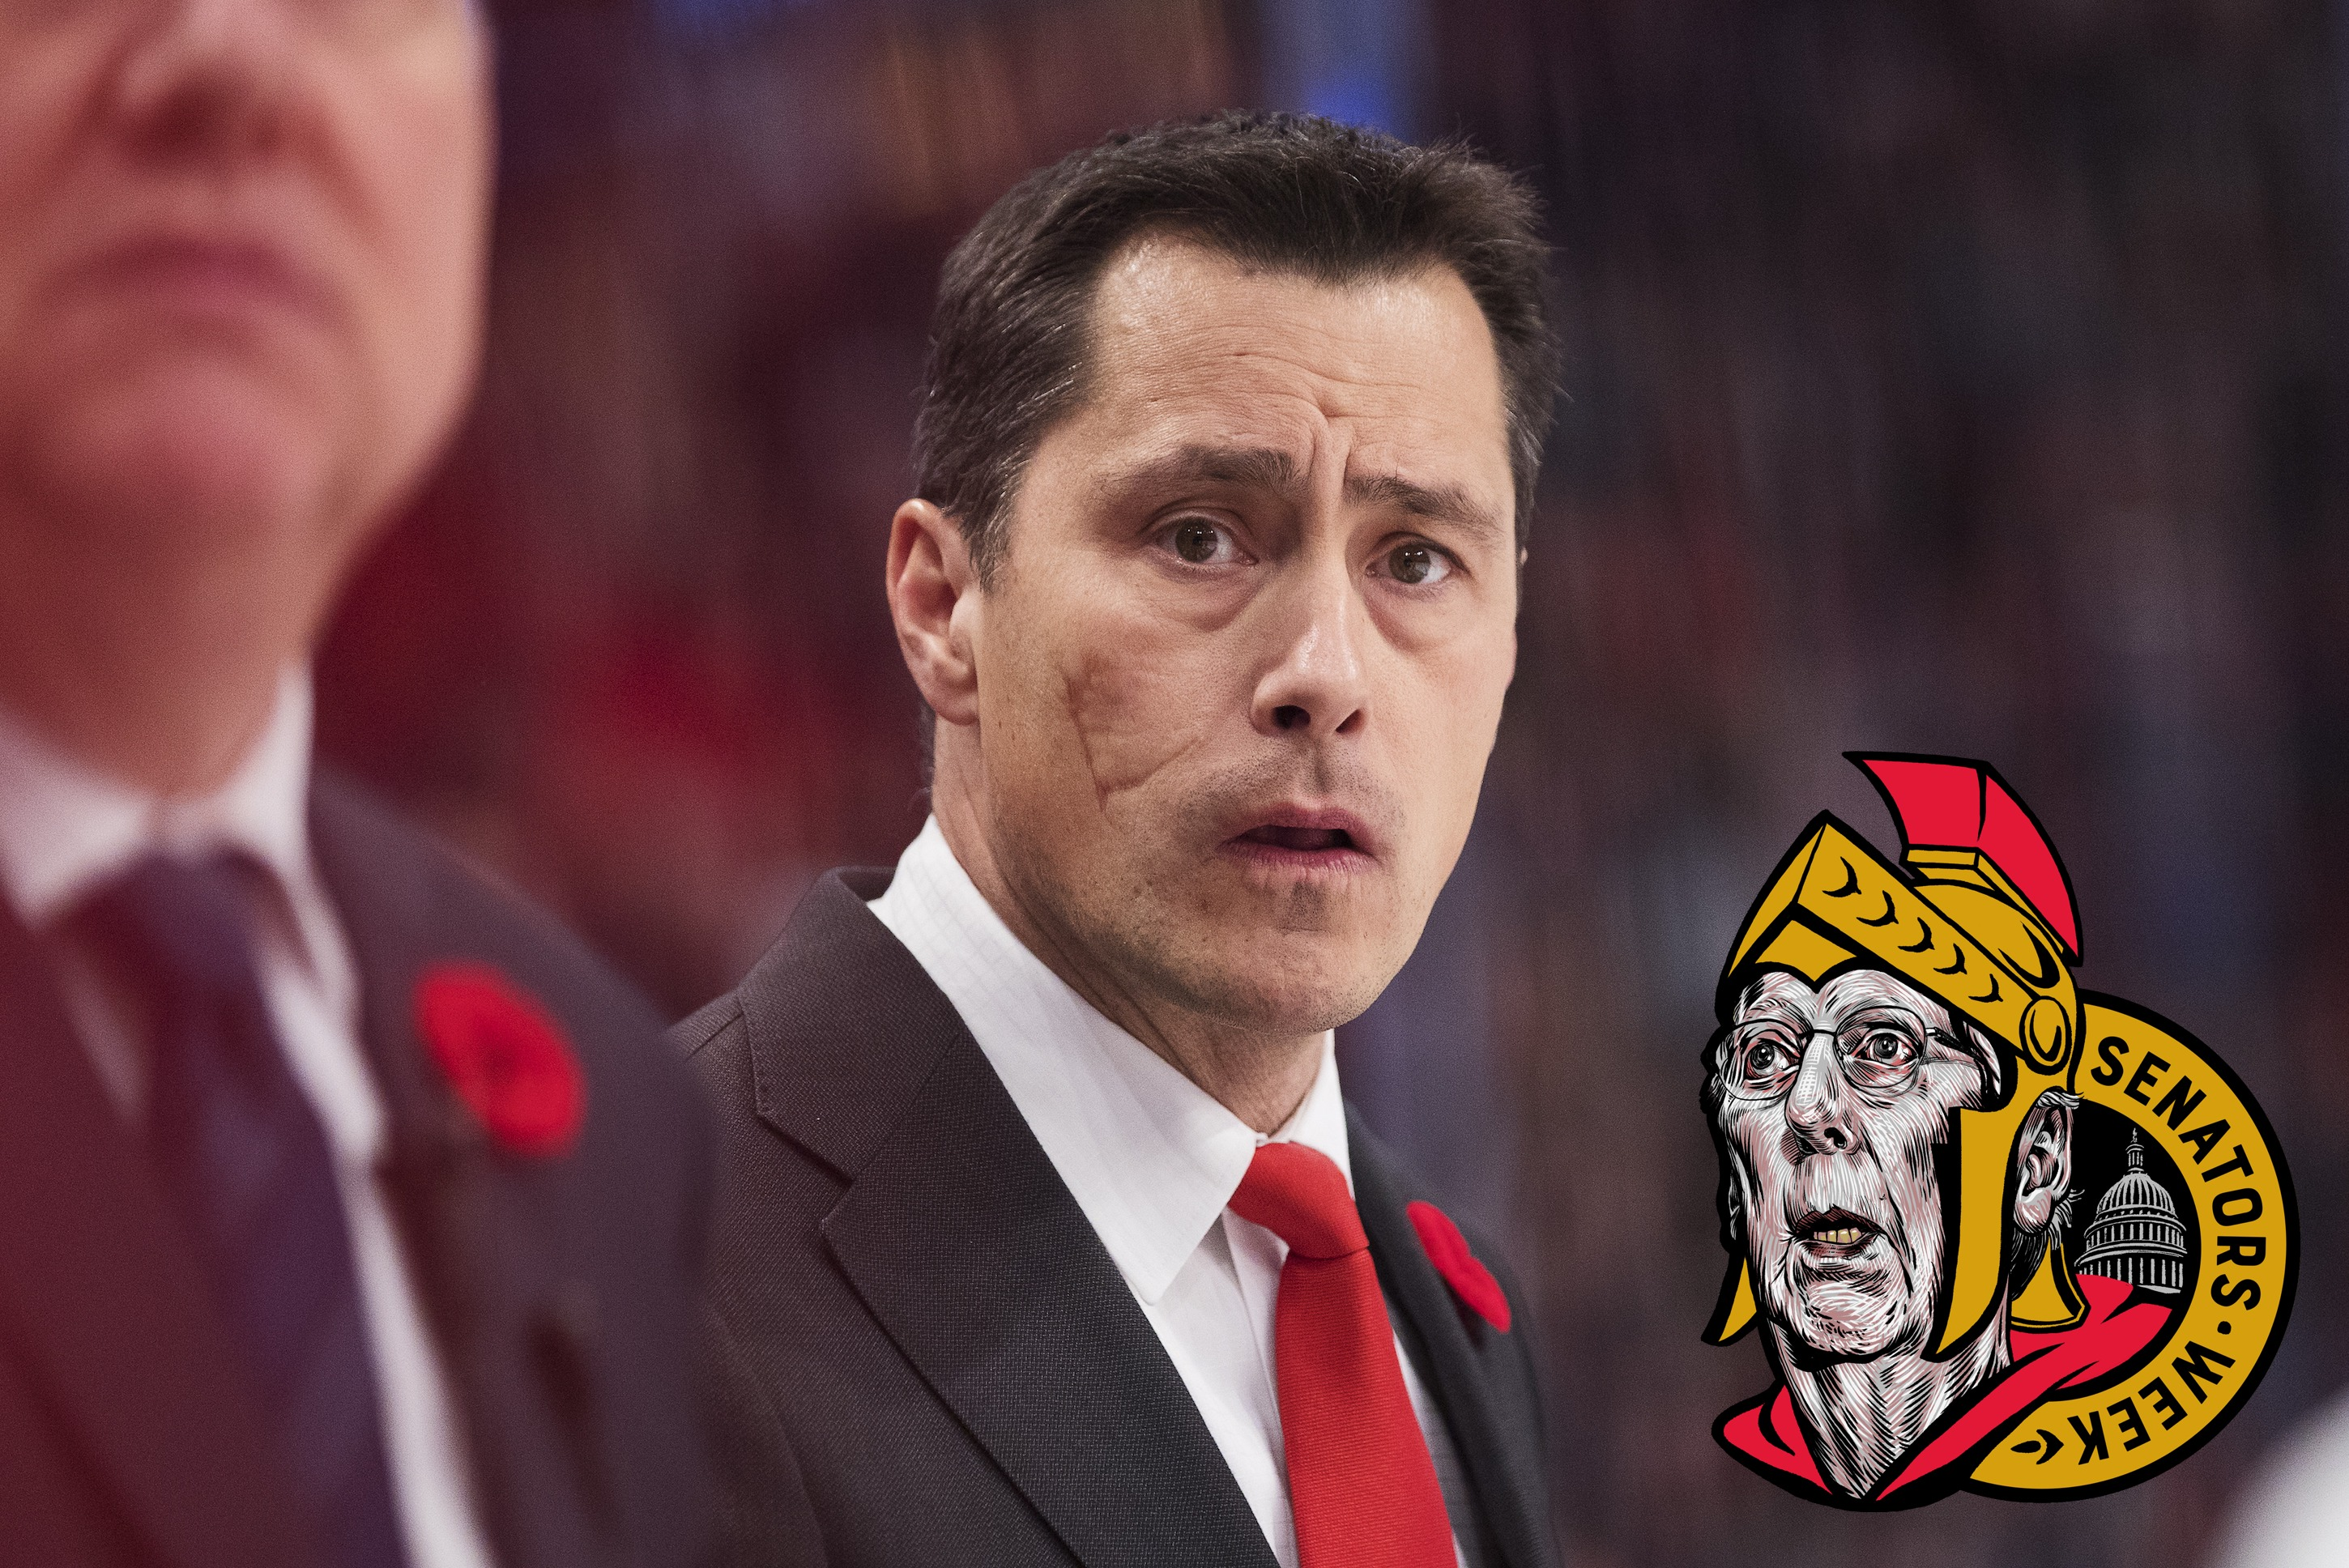 Guy Boucher, head coach of Ottawa Senators during the 2017 SAP NHL Global Series match between Ottawa Senators and Colorado Avalanche at Ericsson Globe on November 10, 2017 in Stockholm.